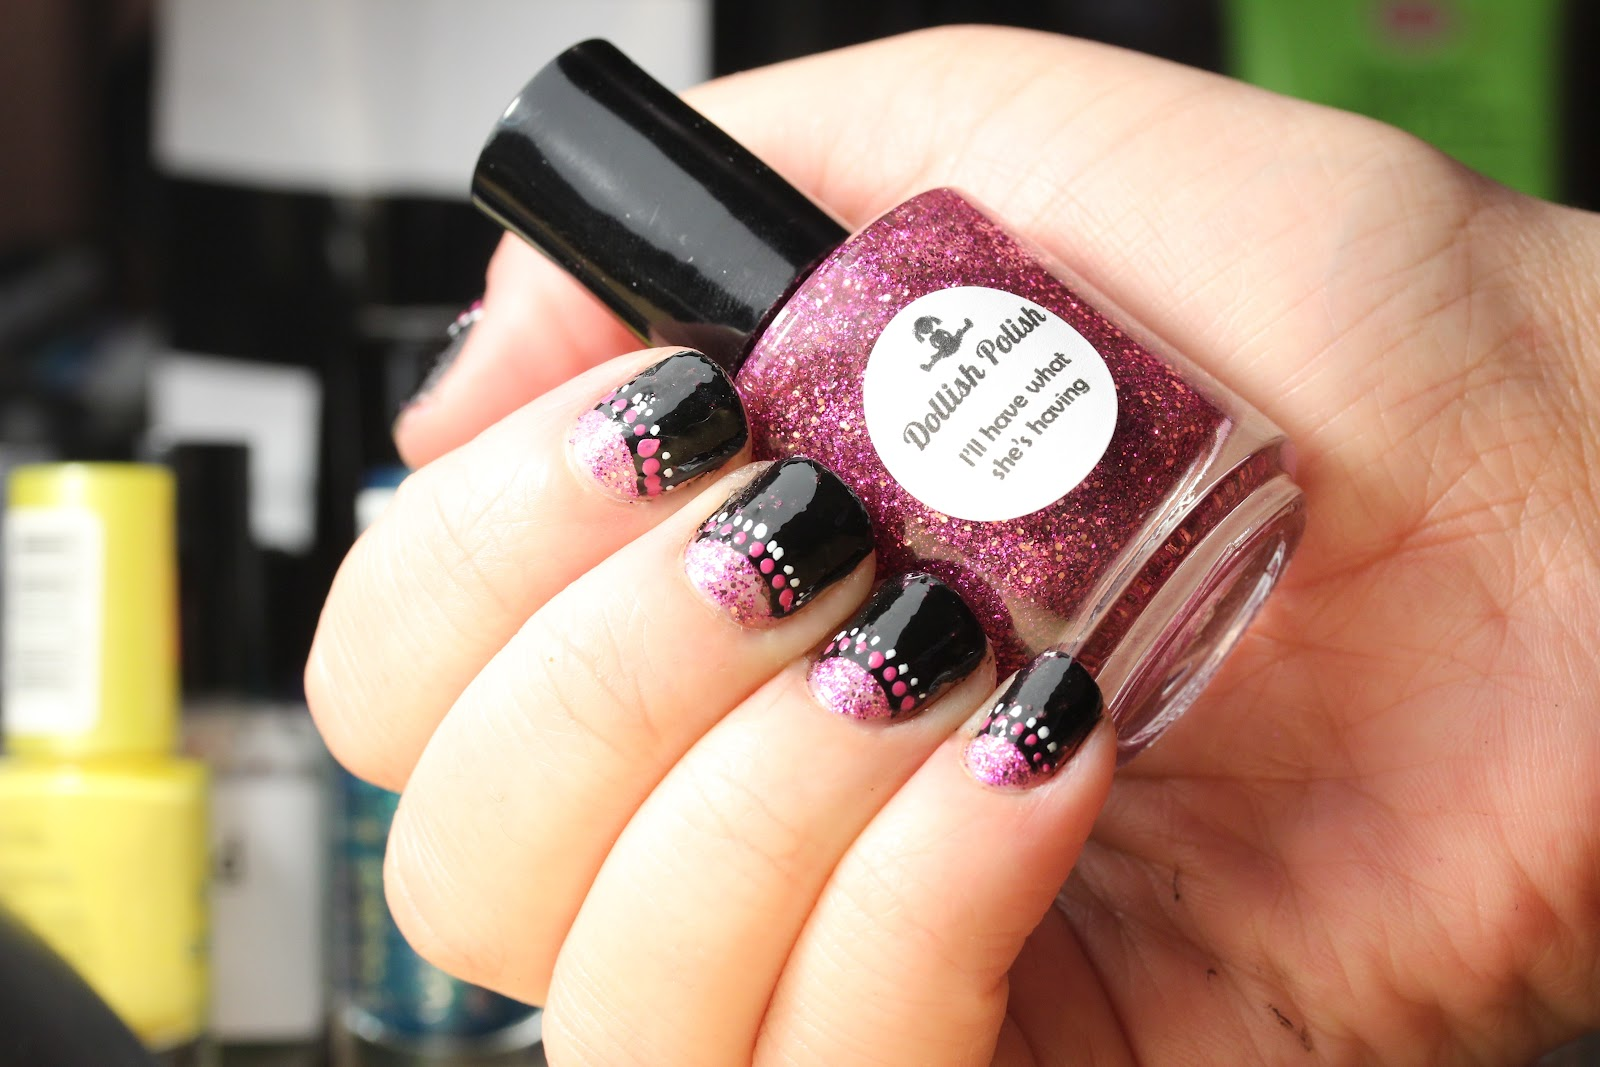 Review: Dollish Polish I'll Have What She's Having in Half-Moon